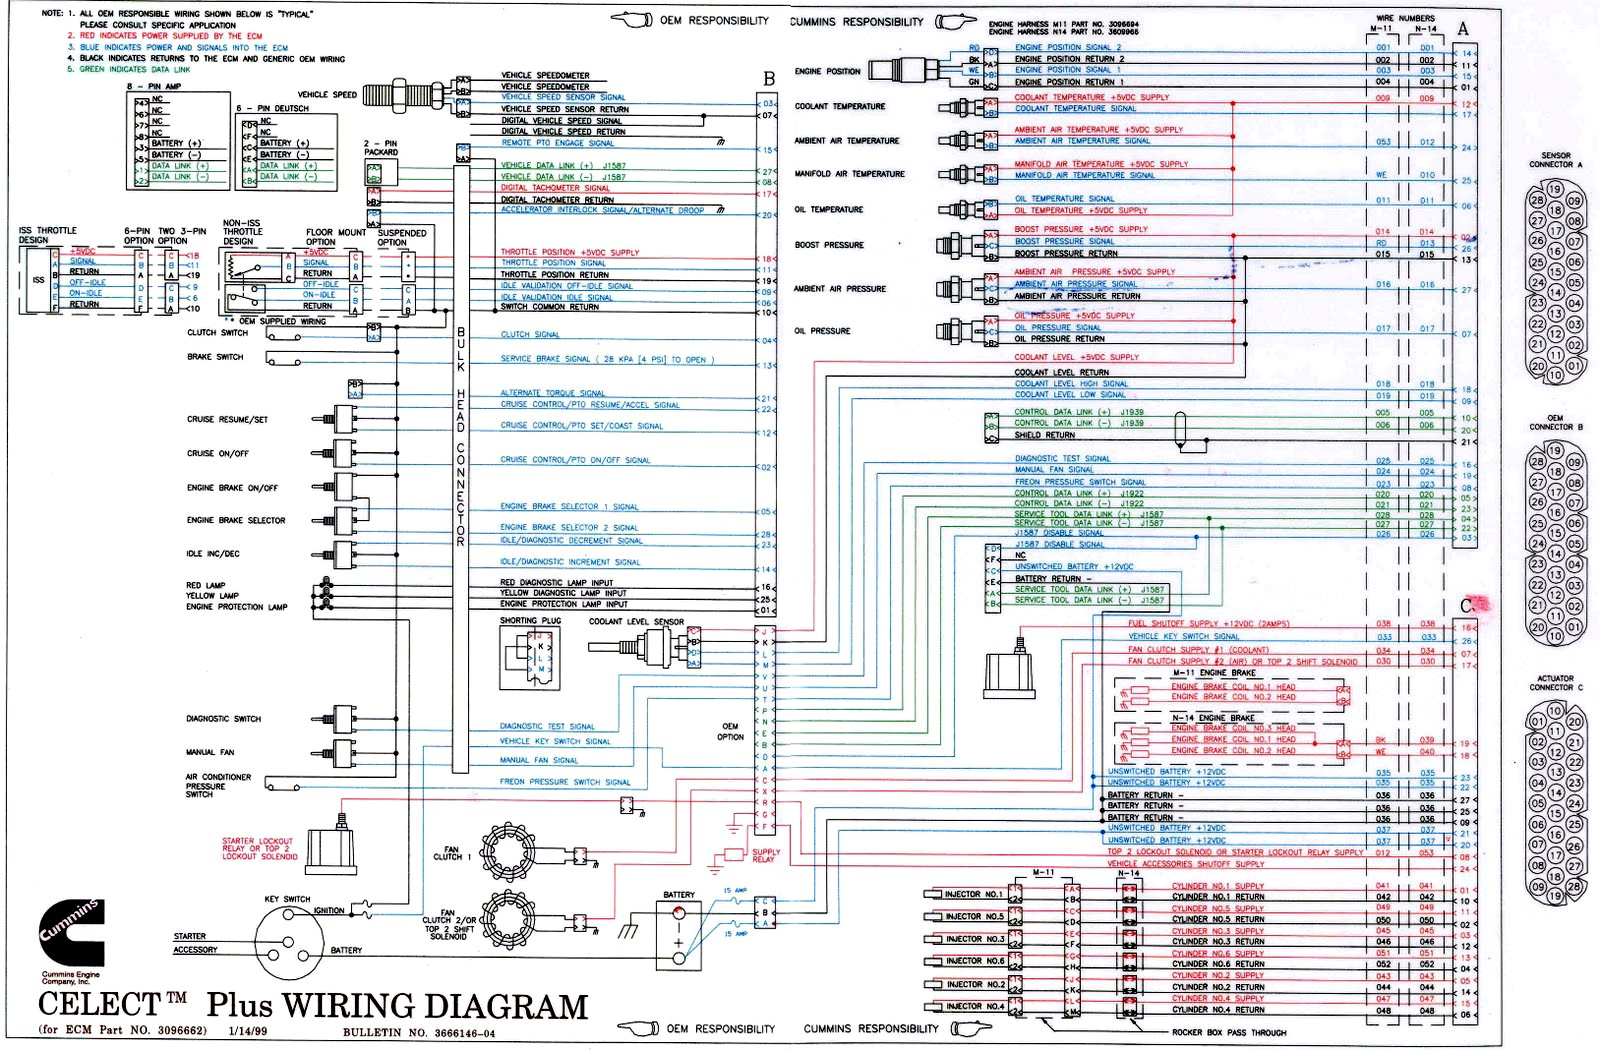 cummins engine schematics emc wiring diagrams cat c12 ecm wiring diagram cat image wiring diagram cat 70 pin ecm